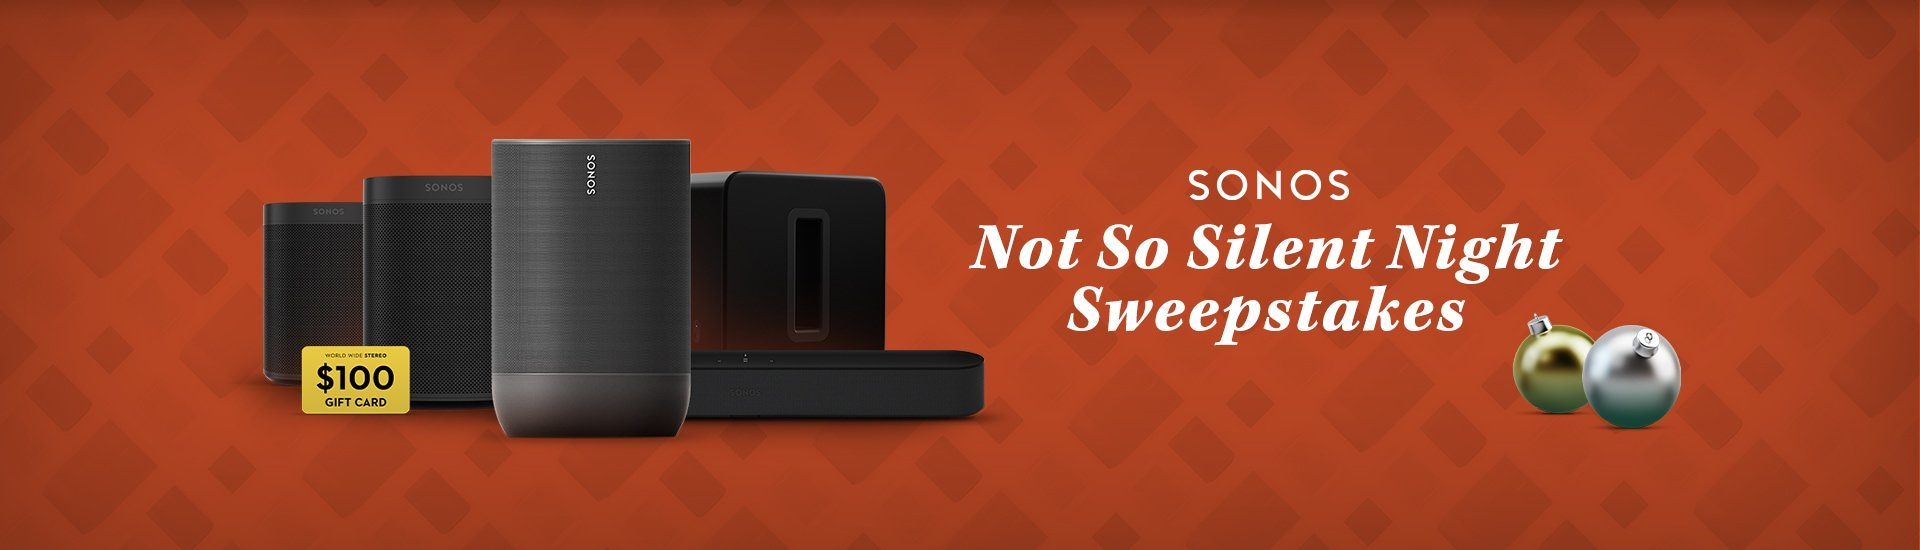 Sonos Not So Silent Night Sweepstakes